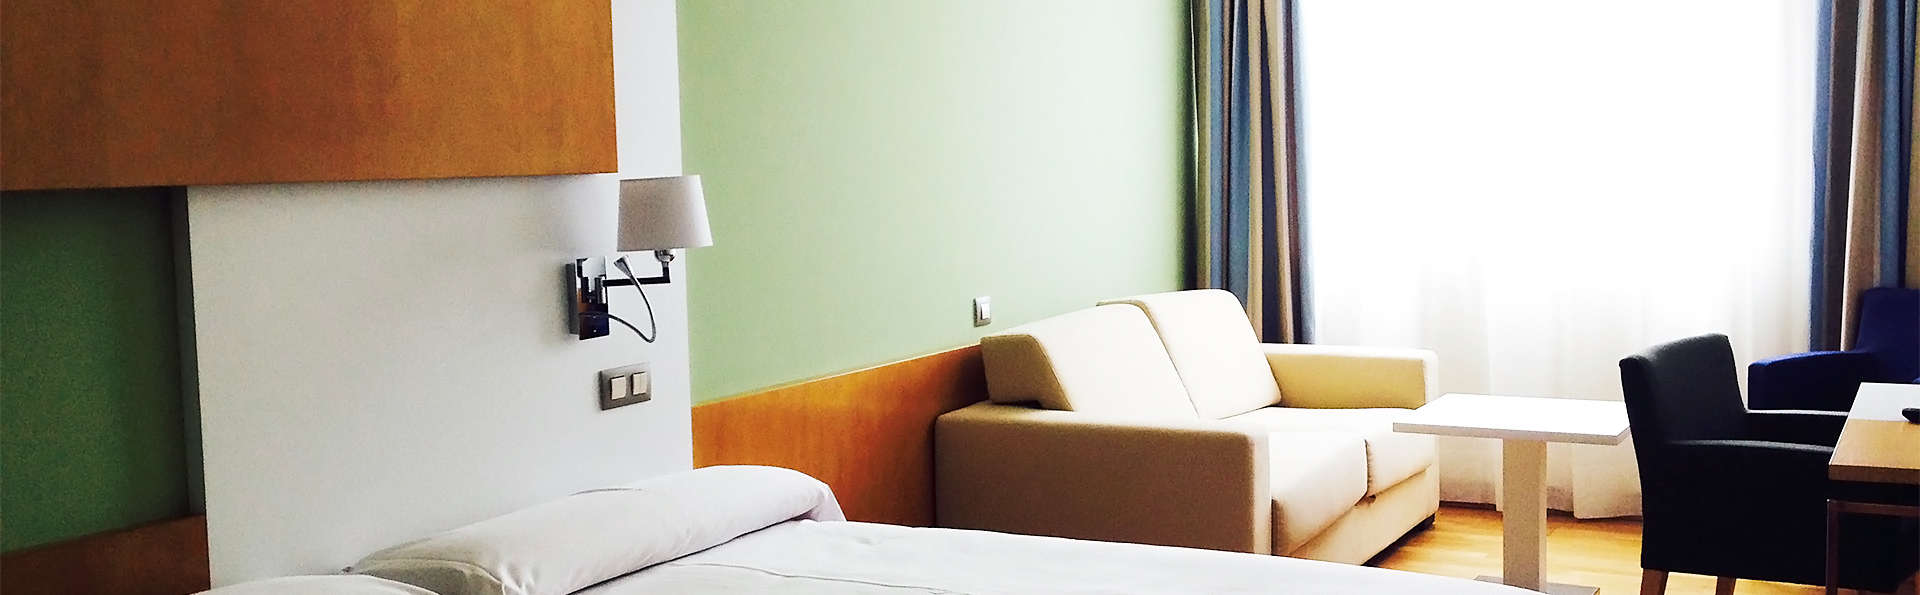 Hotel Boutique Museo - EDIT_room1.jpg